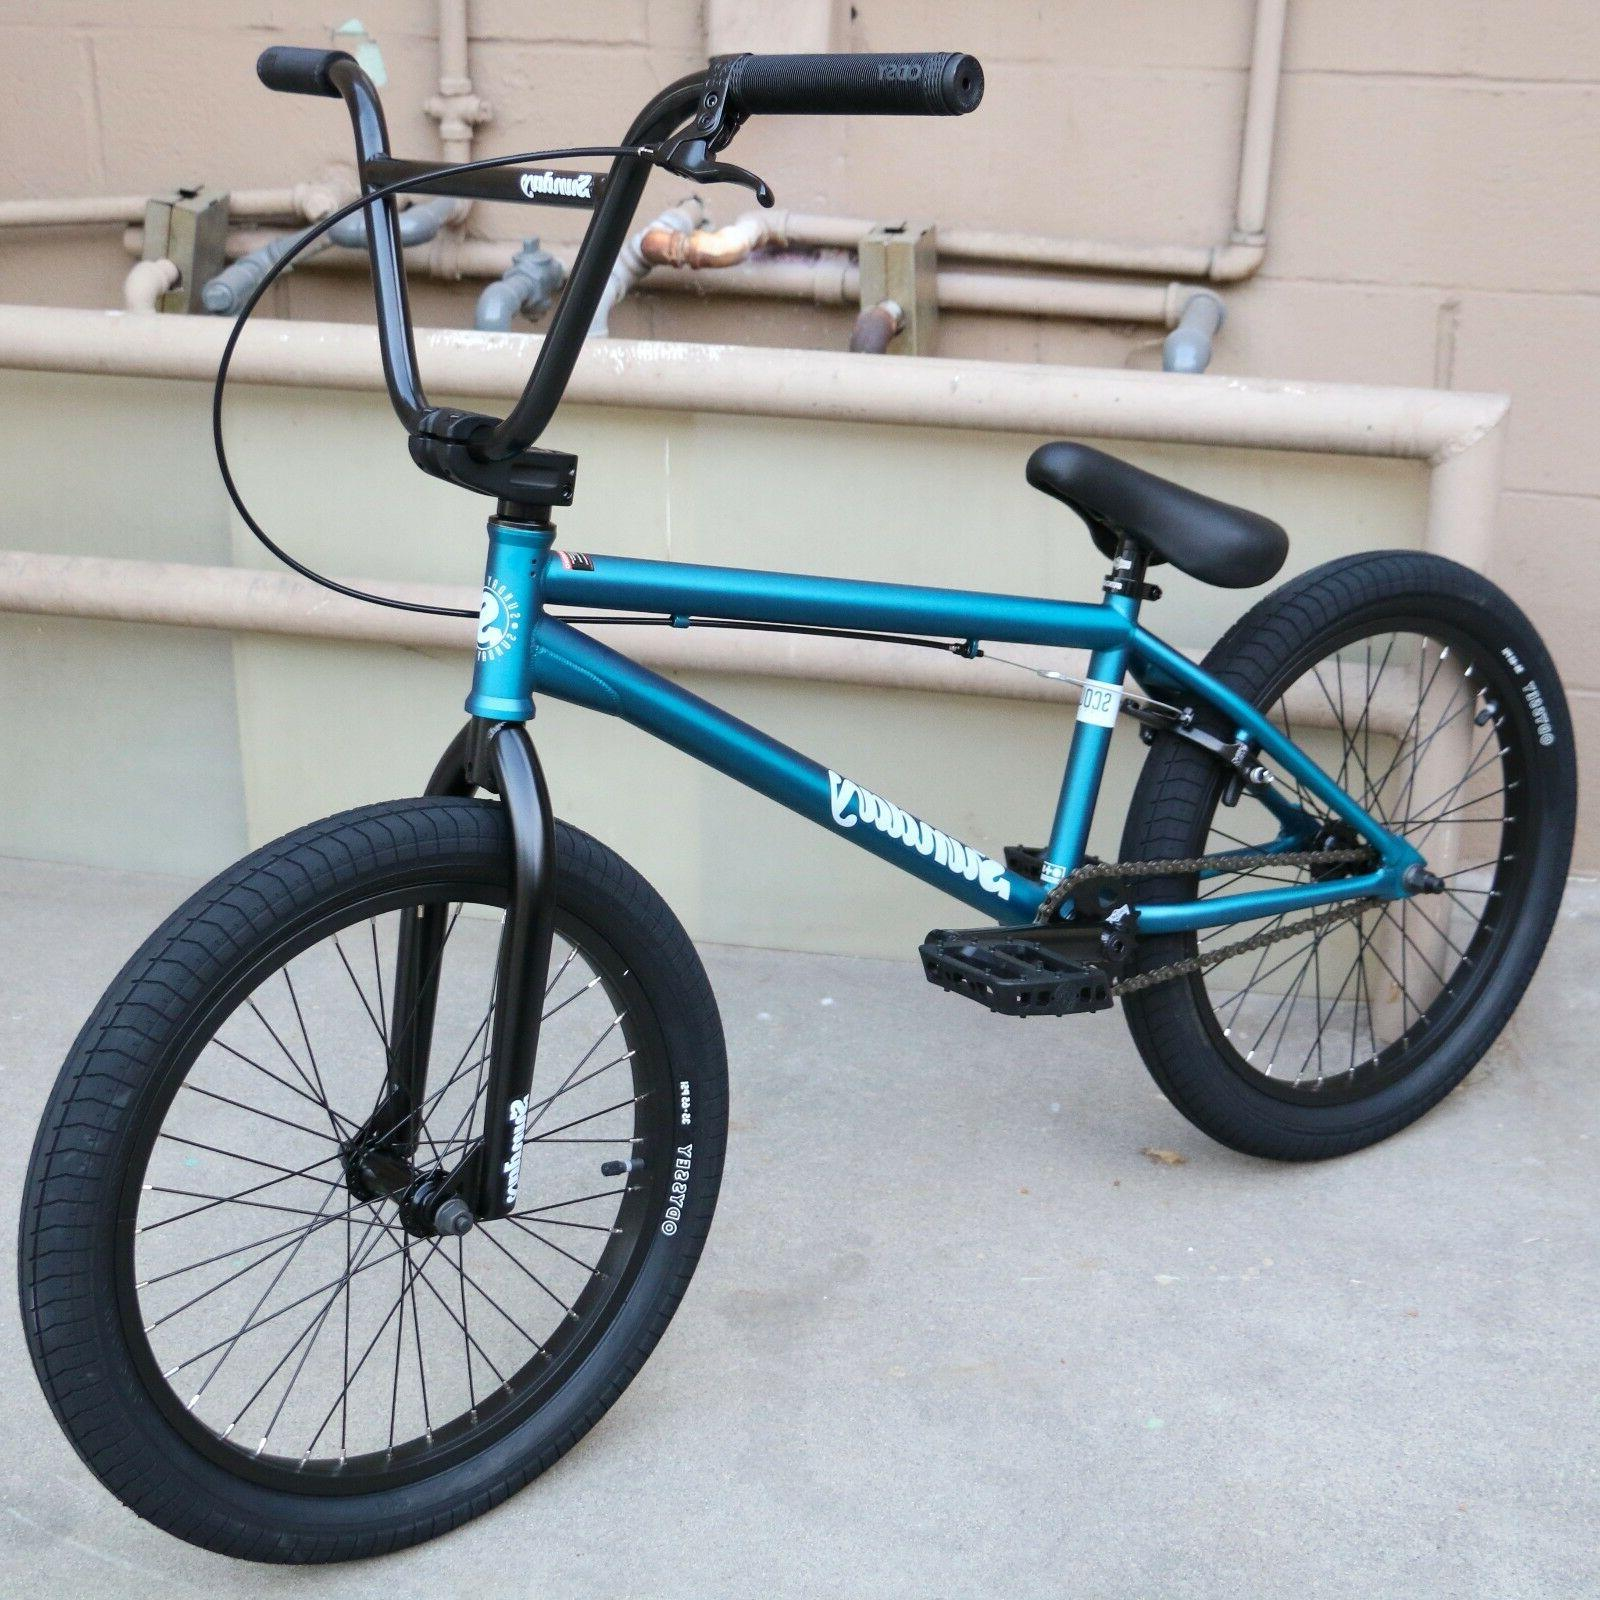 "2018 SUNDAY BIKE BMX SCOUT 20"" TRANS TEAL BICYCLE FIT CULT P"